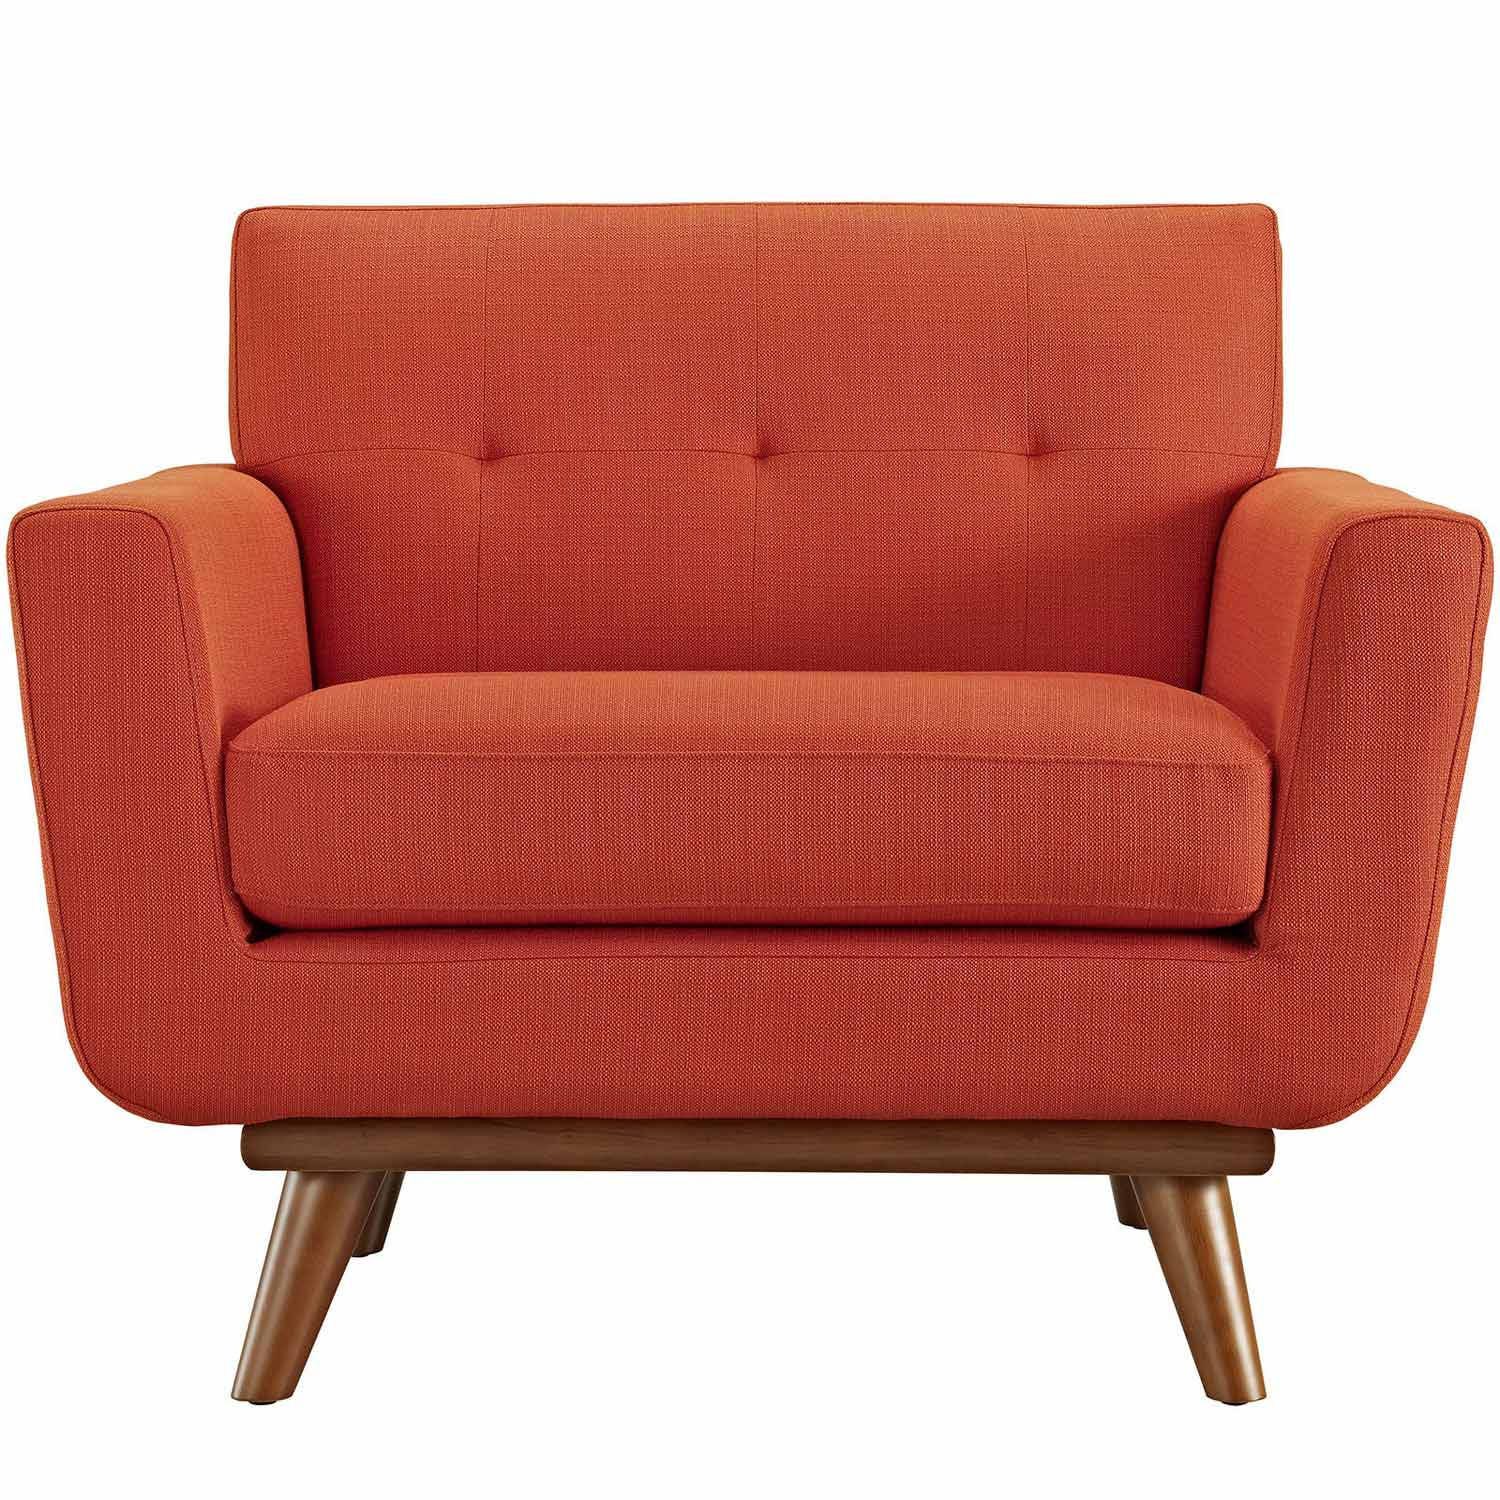 Modway Engage Upholstered Armchair - Atomic Red